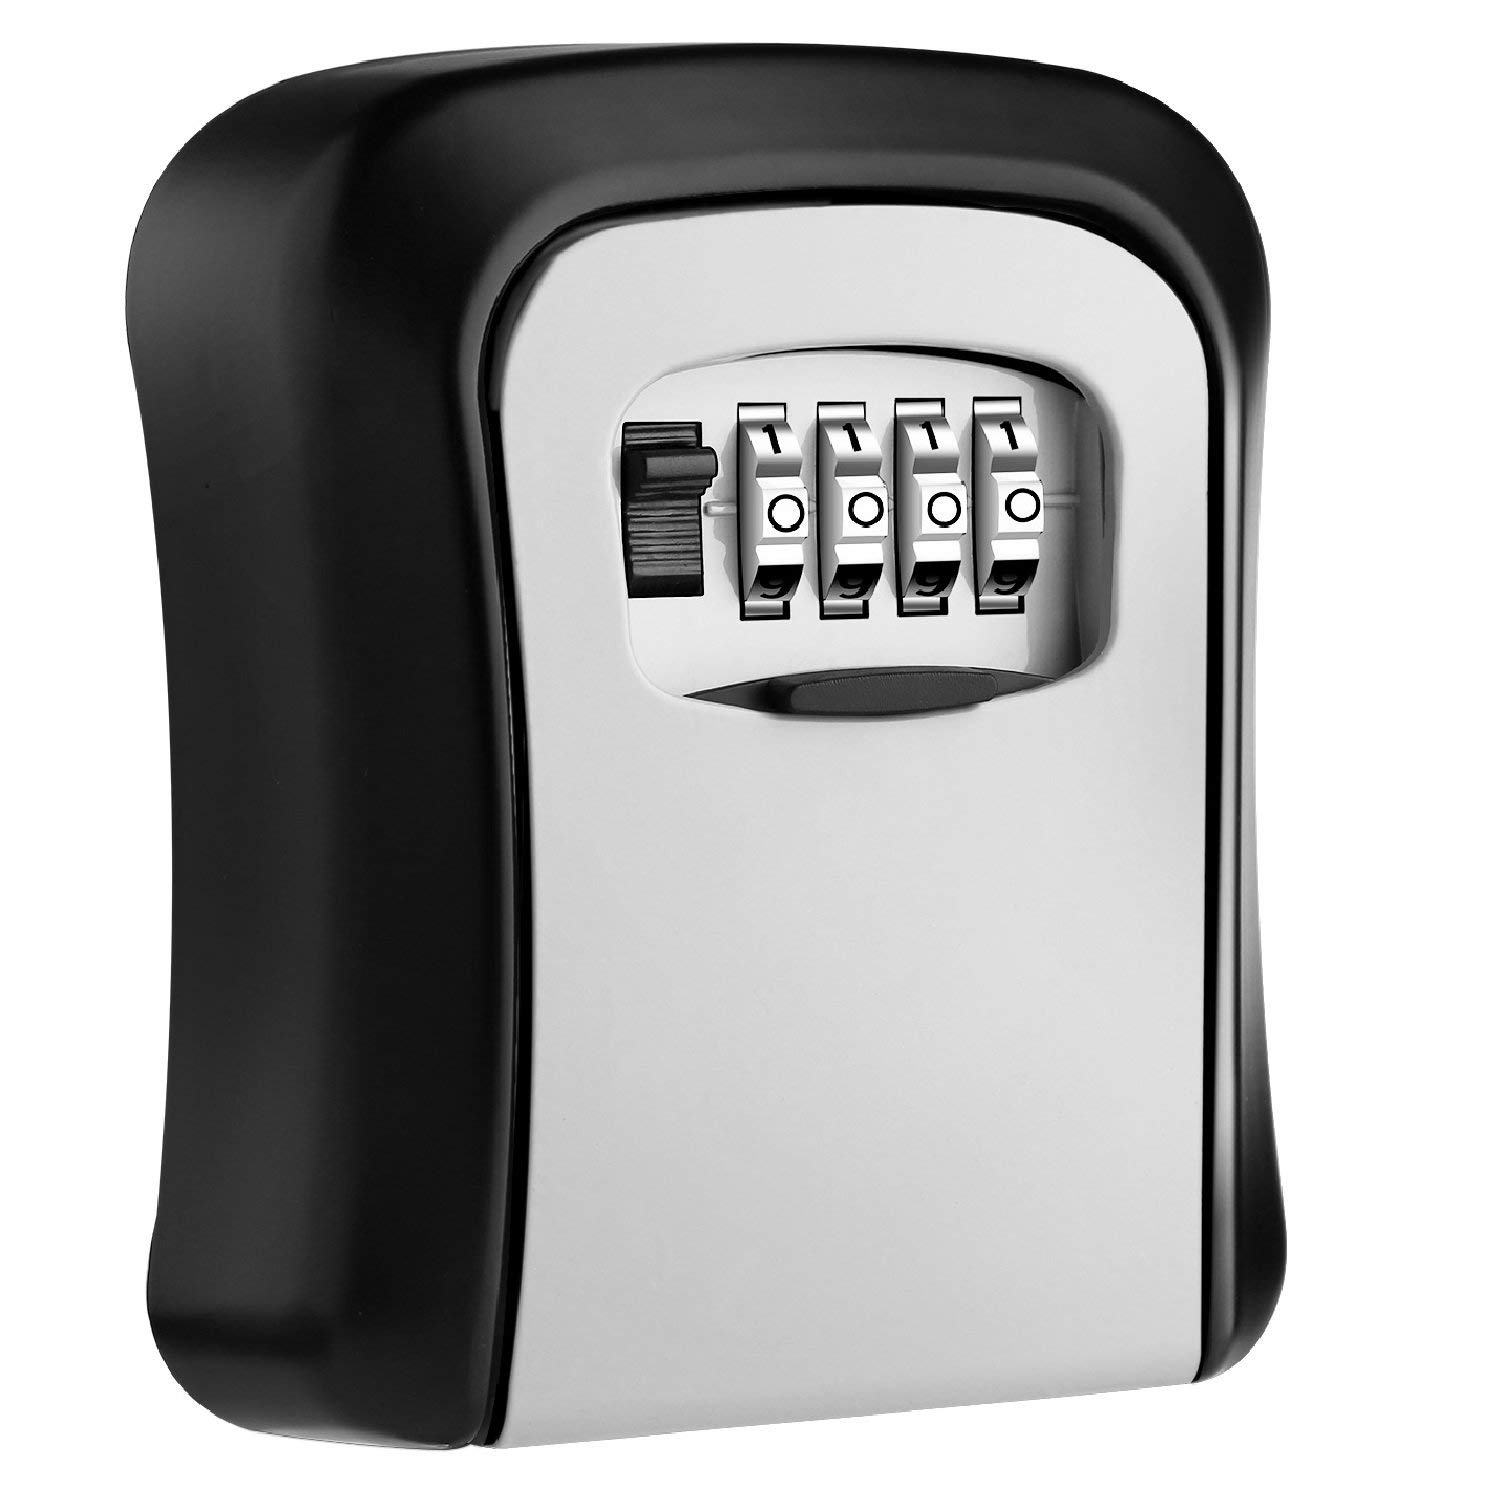 MOOL Key Lock Box Wall Mounted Aluminum alloy Key Safe Box Weatherproof 4 Digit Combination Key Stor